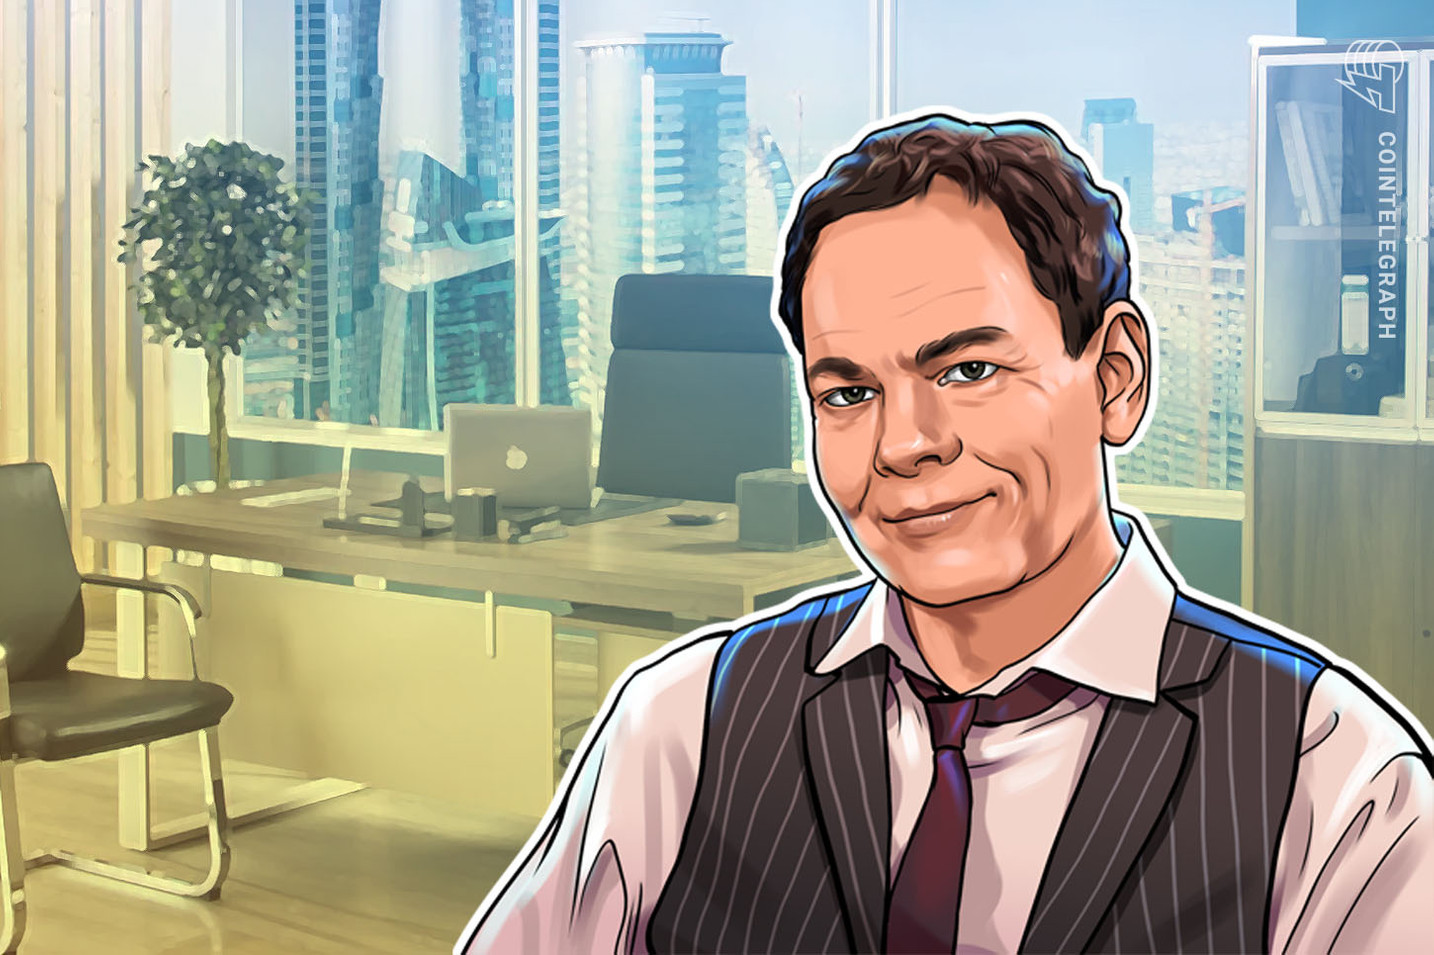 Max Keiser: Warren Buffett ha investito in oro, Bitcoin arriverà a 50.000$